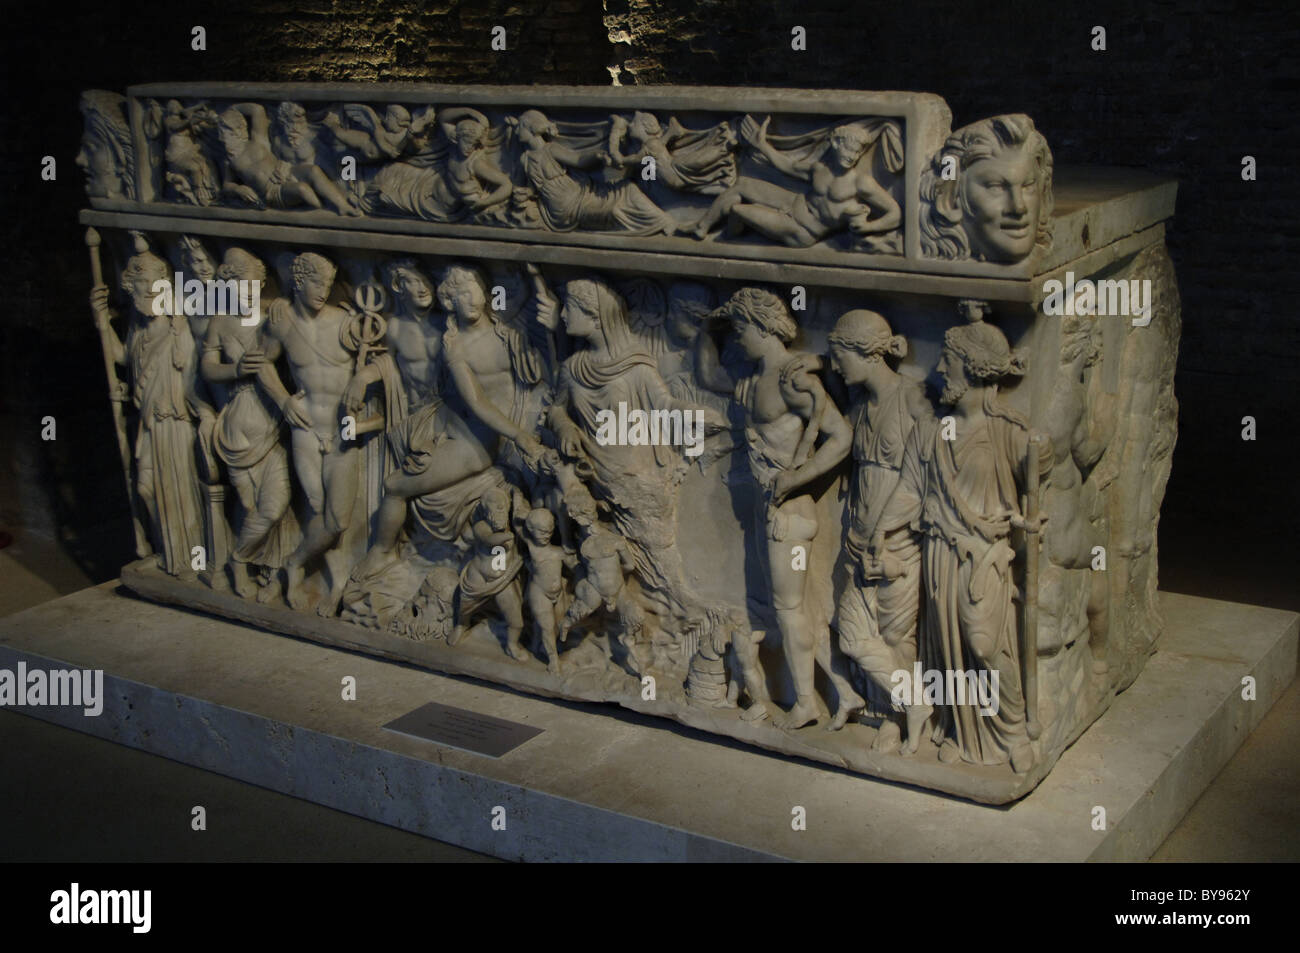 Sarcophagus depicting Dionysus and his wife, Ariadne. Stock Photo